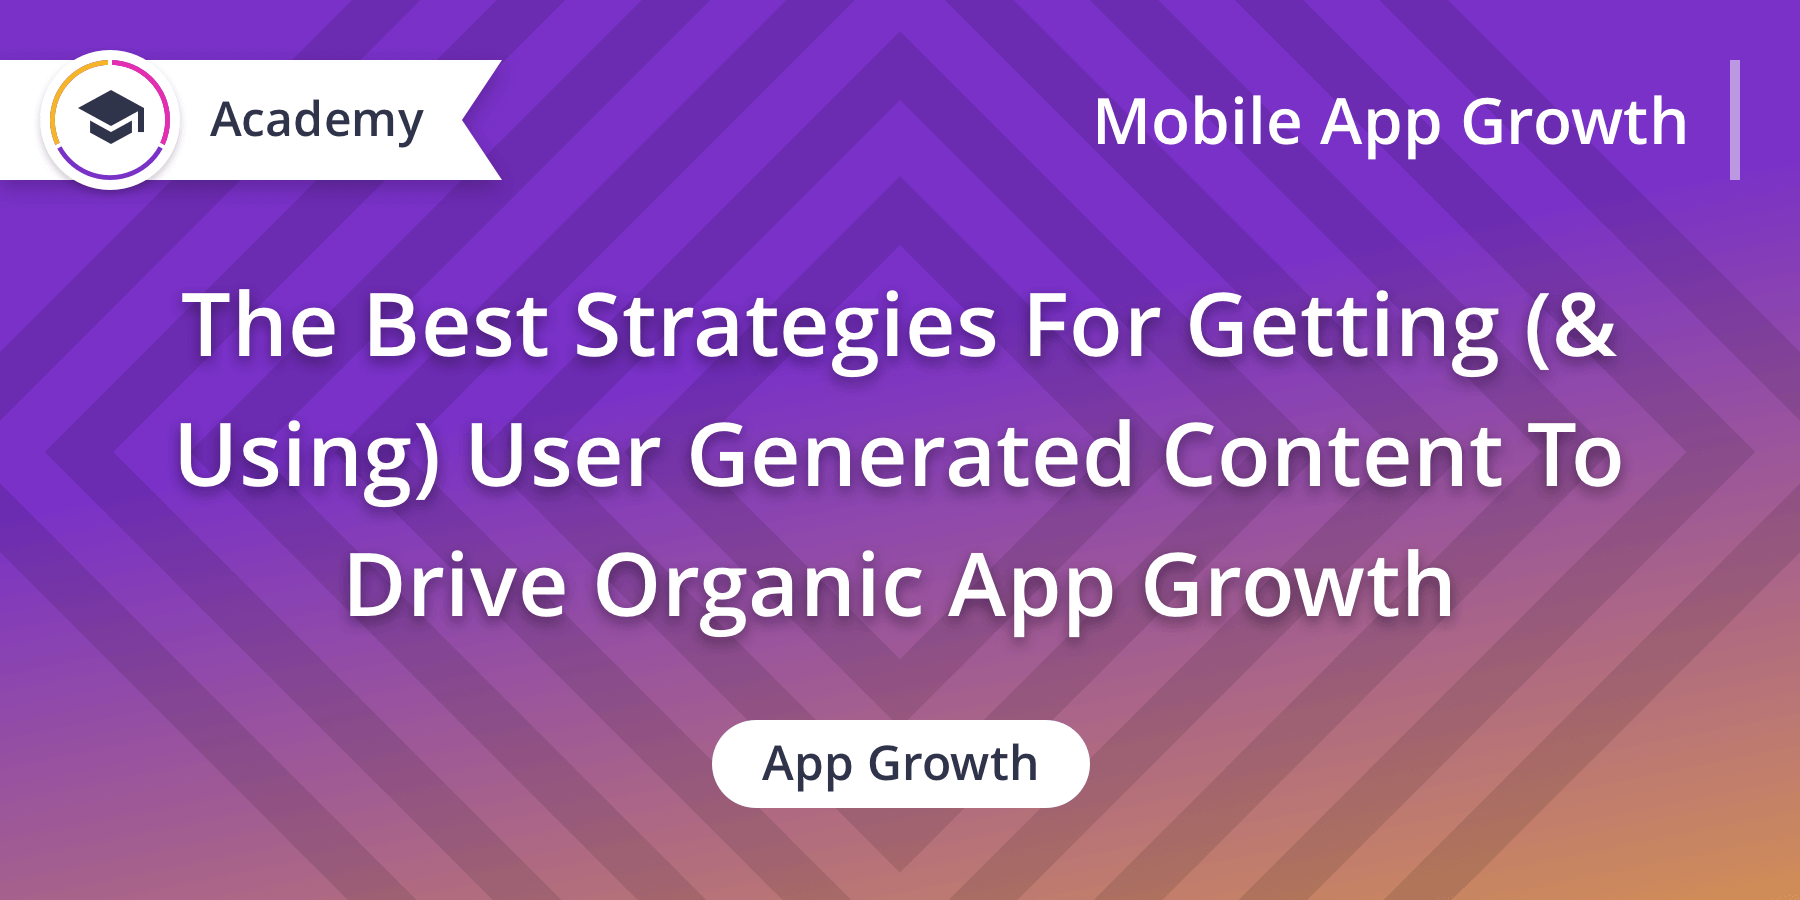 The Best Strategies For Getting (& Using) User Generated Content To Drive Organic App Growth